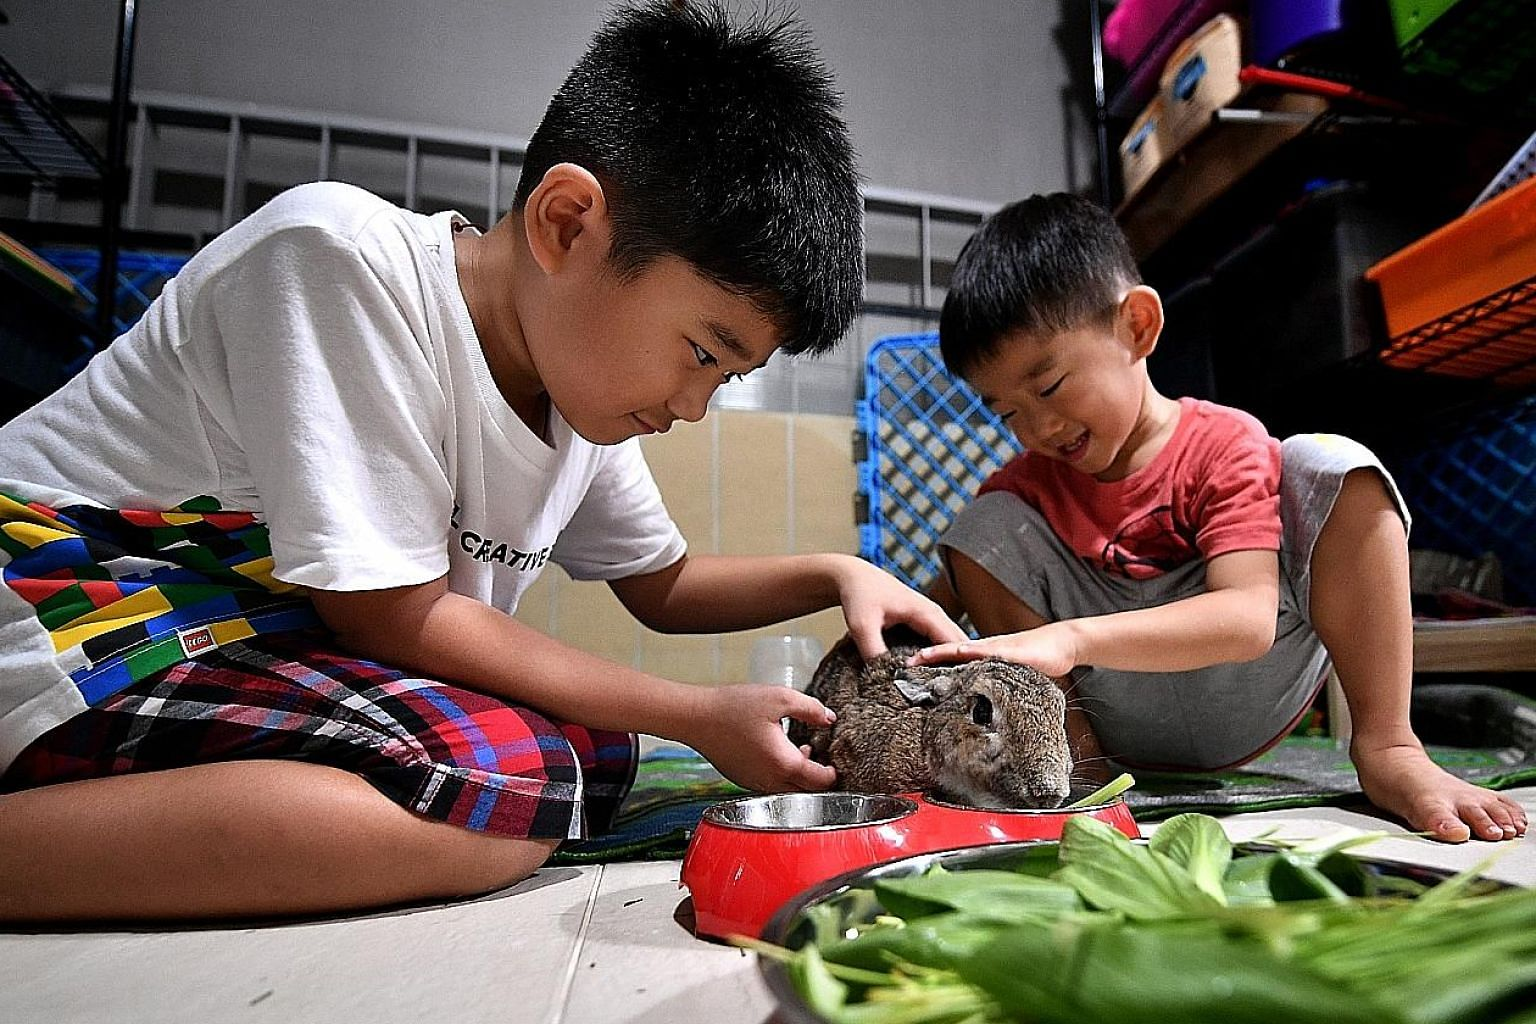 Brothers Lucas (left) and Lewis Tan help to feed and clean their three house rabbits. Mr Pragalathan Ramiah and his wife, Lalitha, train their daughters Shaistha, nine, and Tishah, four, to help care for their pet dog and two cats.